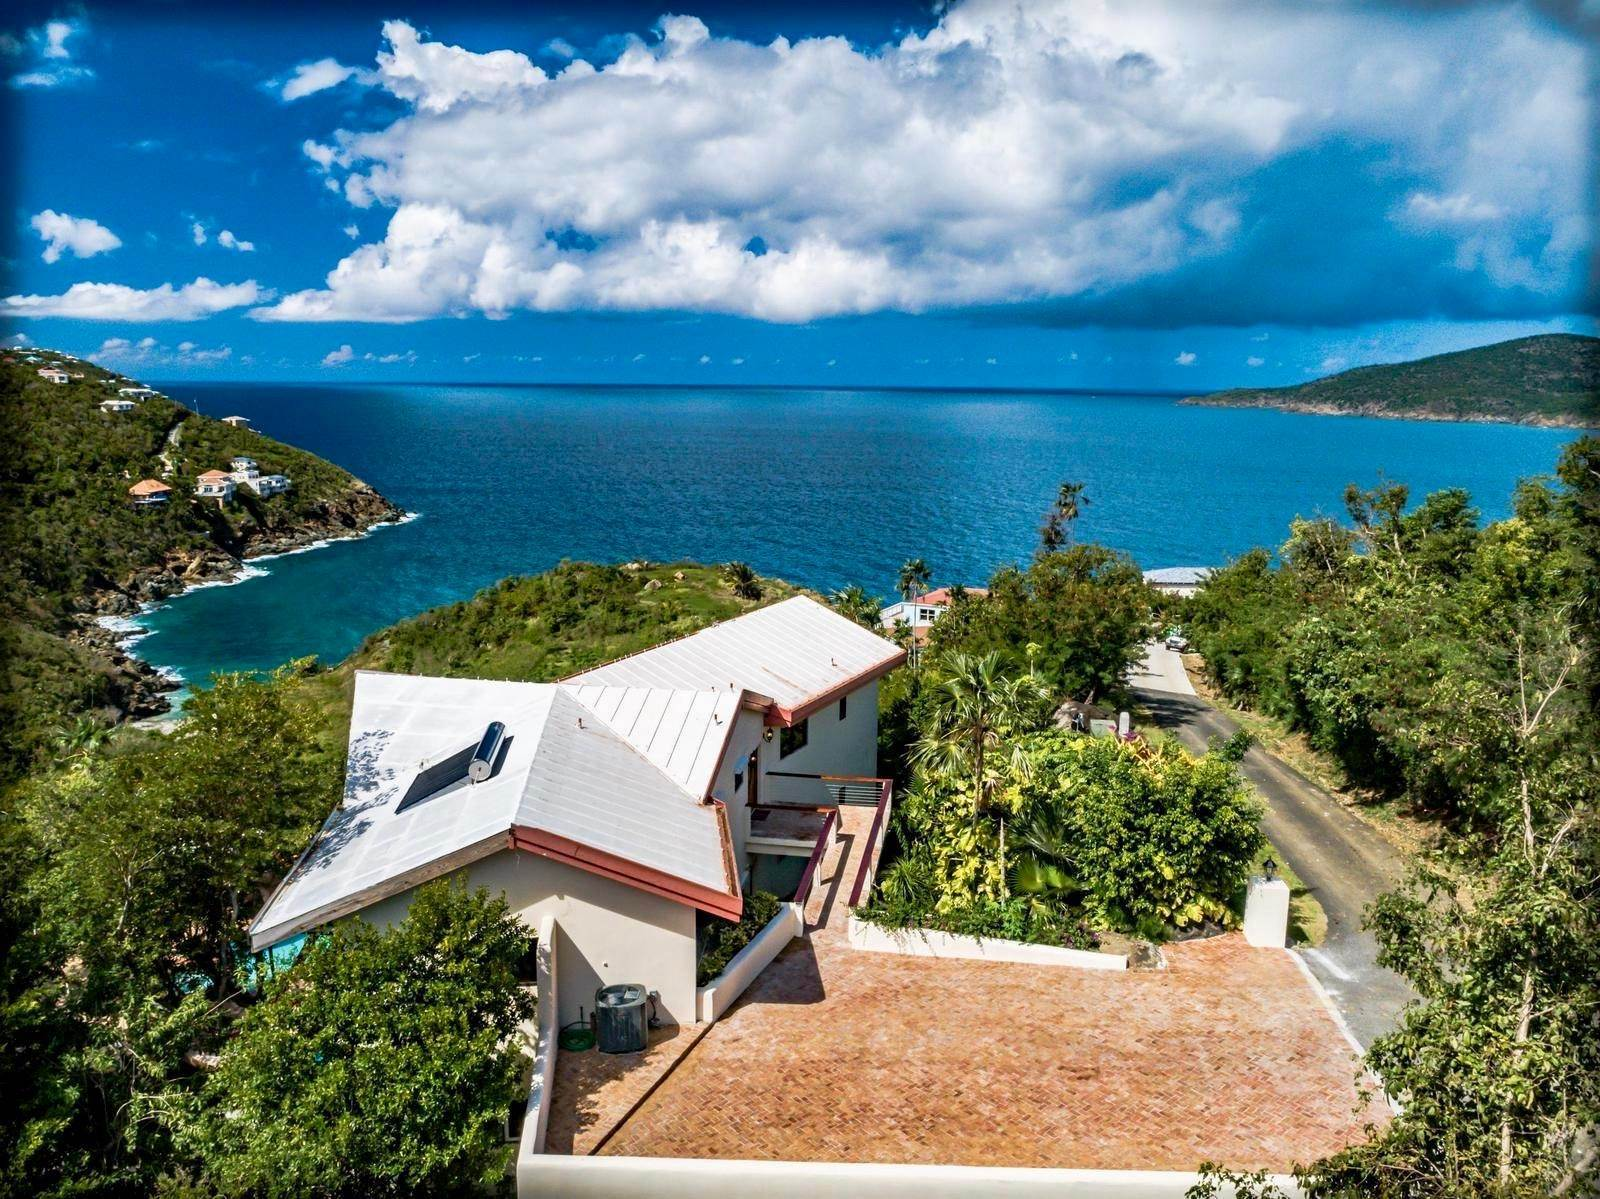 Single Family Homes for Sale at C-2-H & C- Lovenlund GNS St Thomas, Virgin Islands 00802 United States Virgin Islands